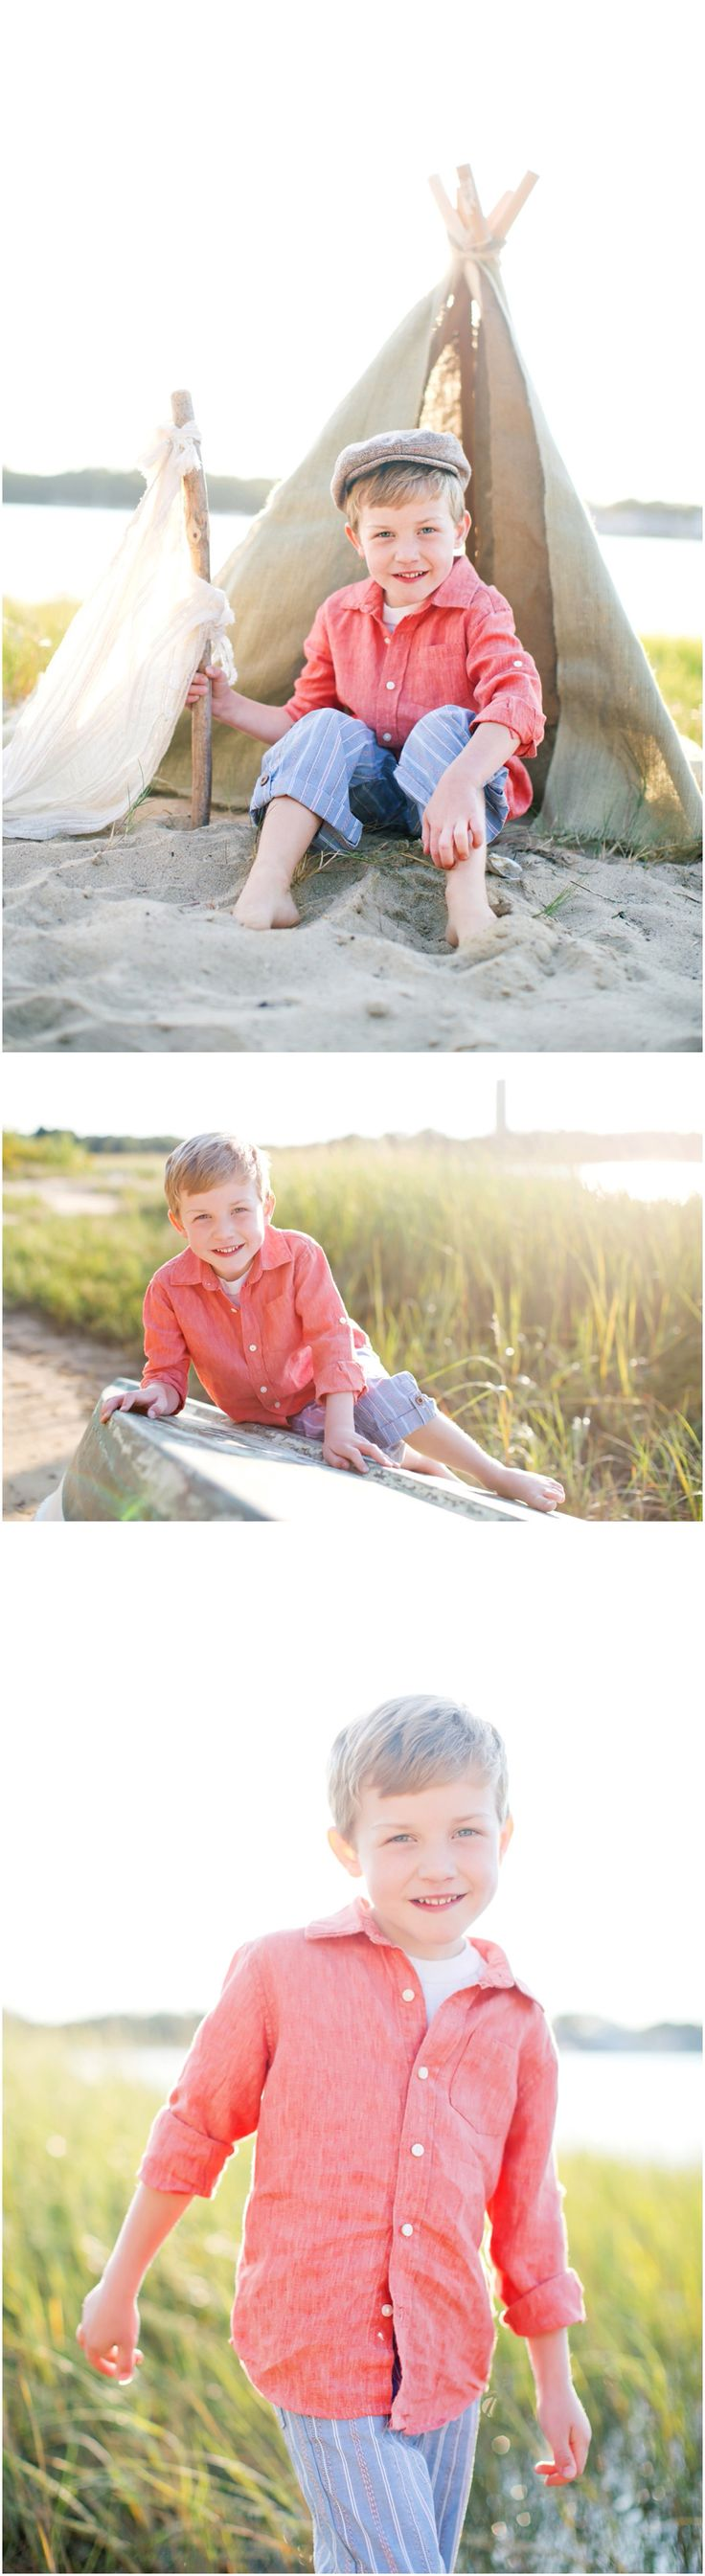 ryan and fam : cape cod family photographer